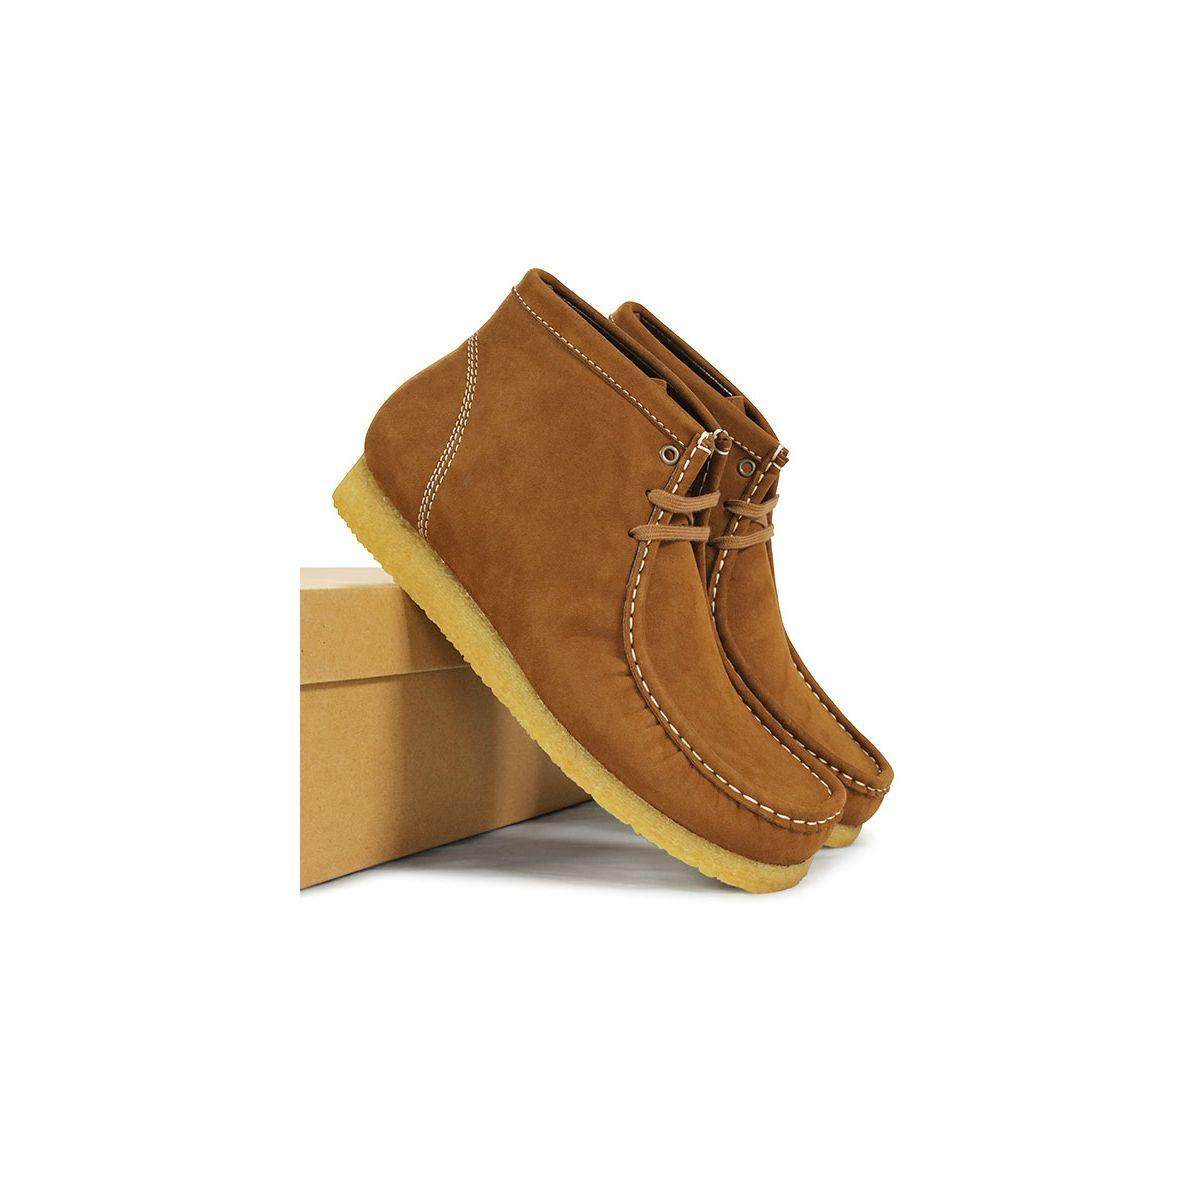 Will's Vegan モカシンブーツ スエード Moccasin Boots Suede - ハッピーキヌア